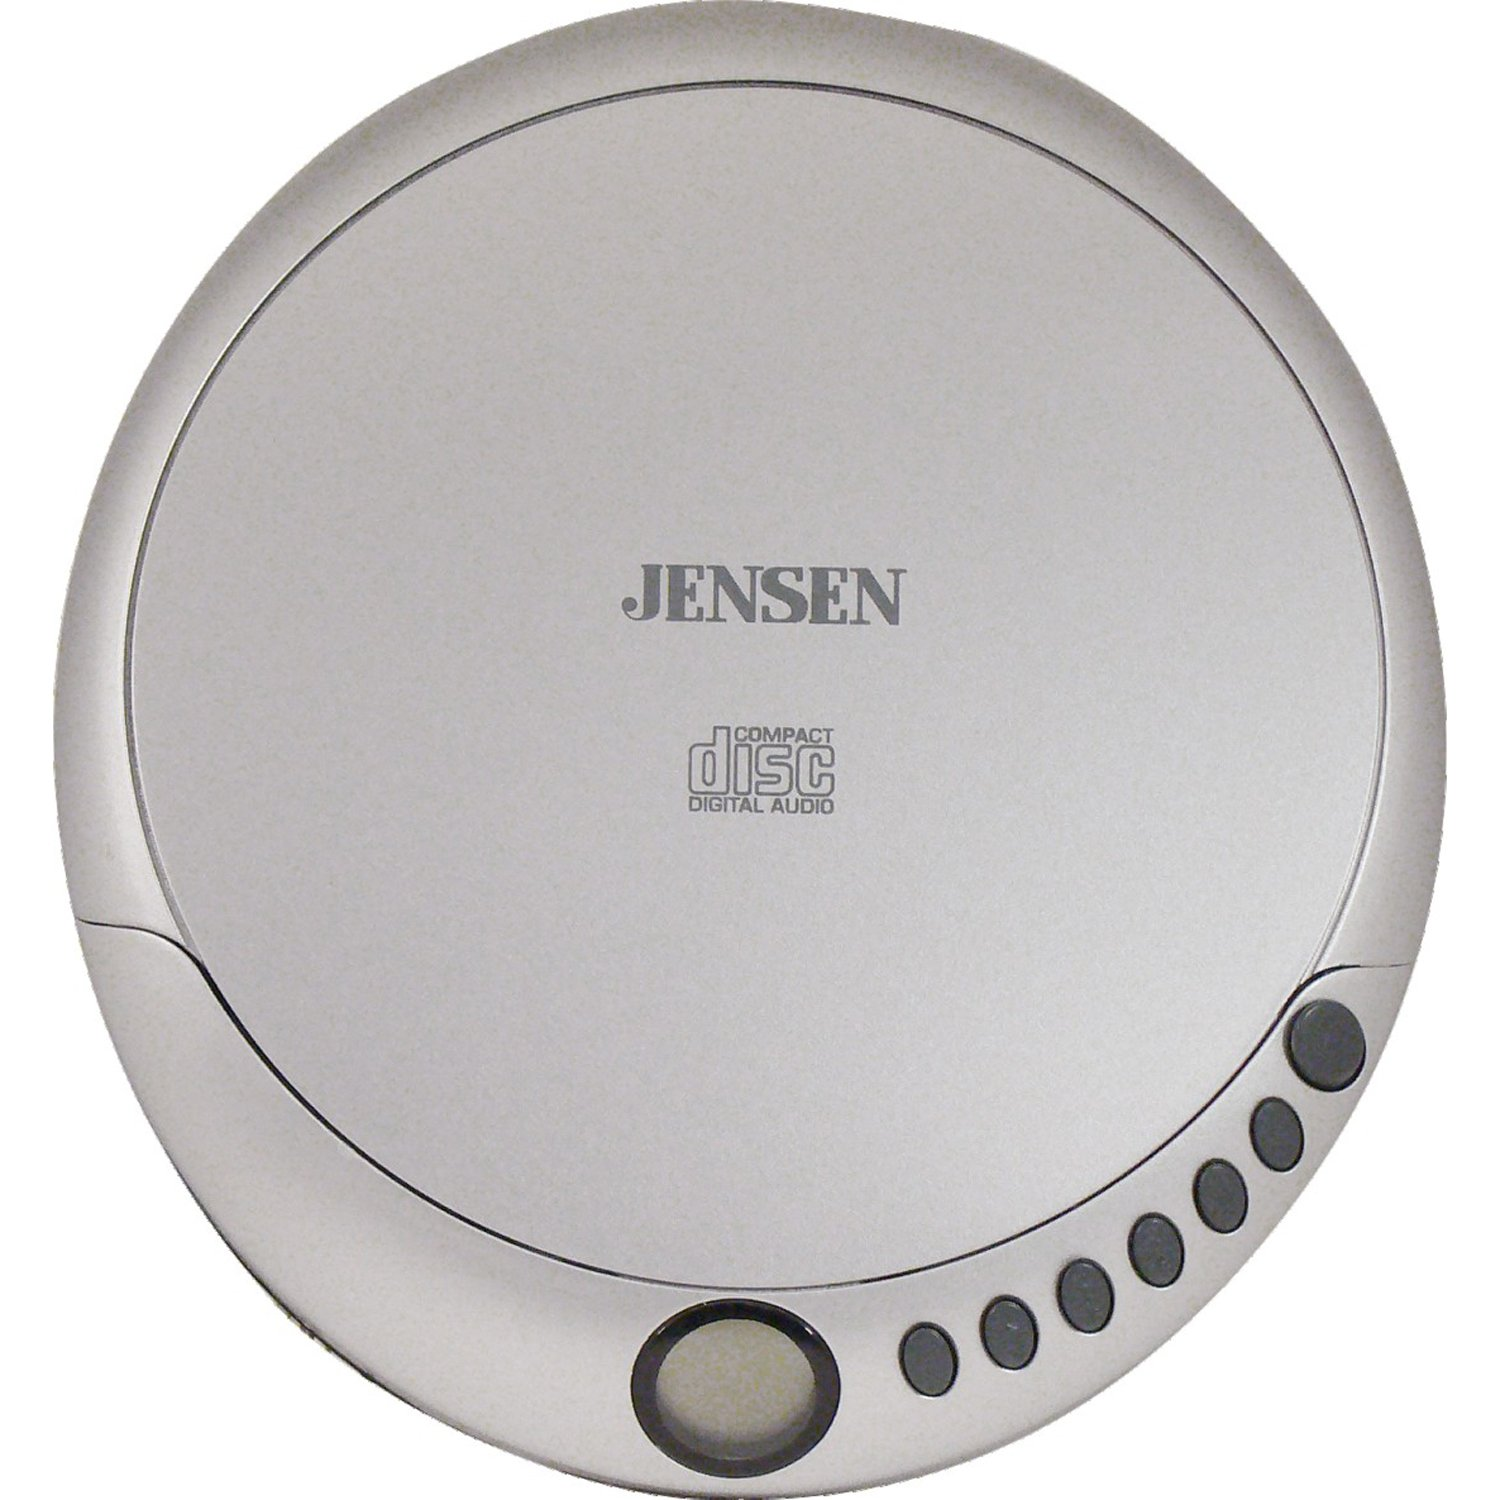 Jensen CD-36 Personal CD Player, Programmable Memory, Stereo Earbuds included, CD-R/RW Compatible